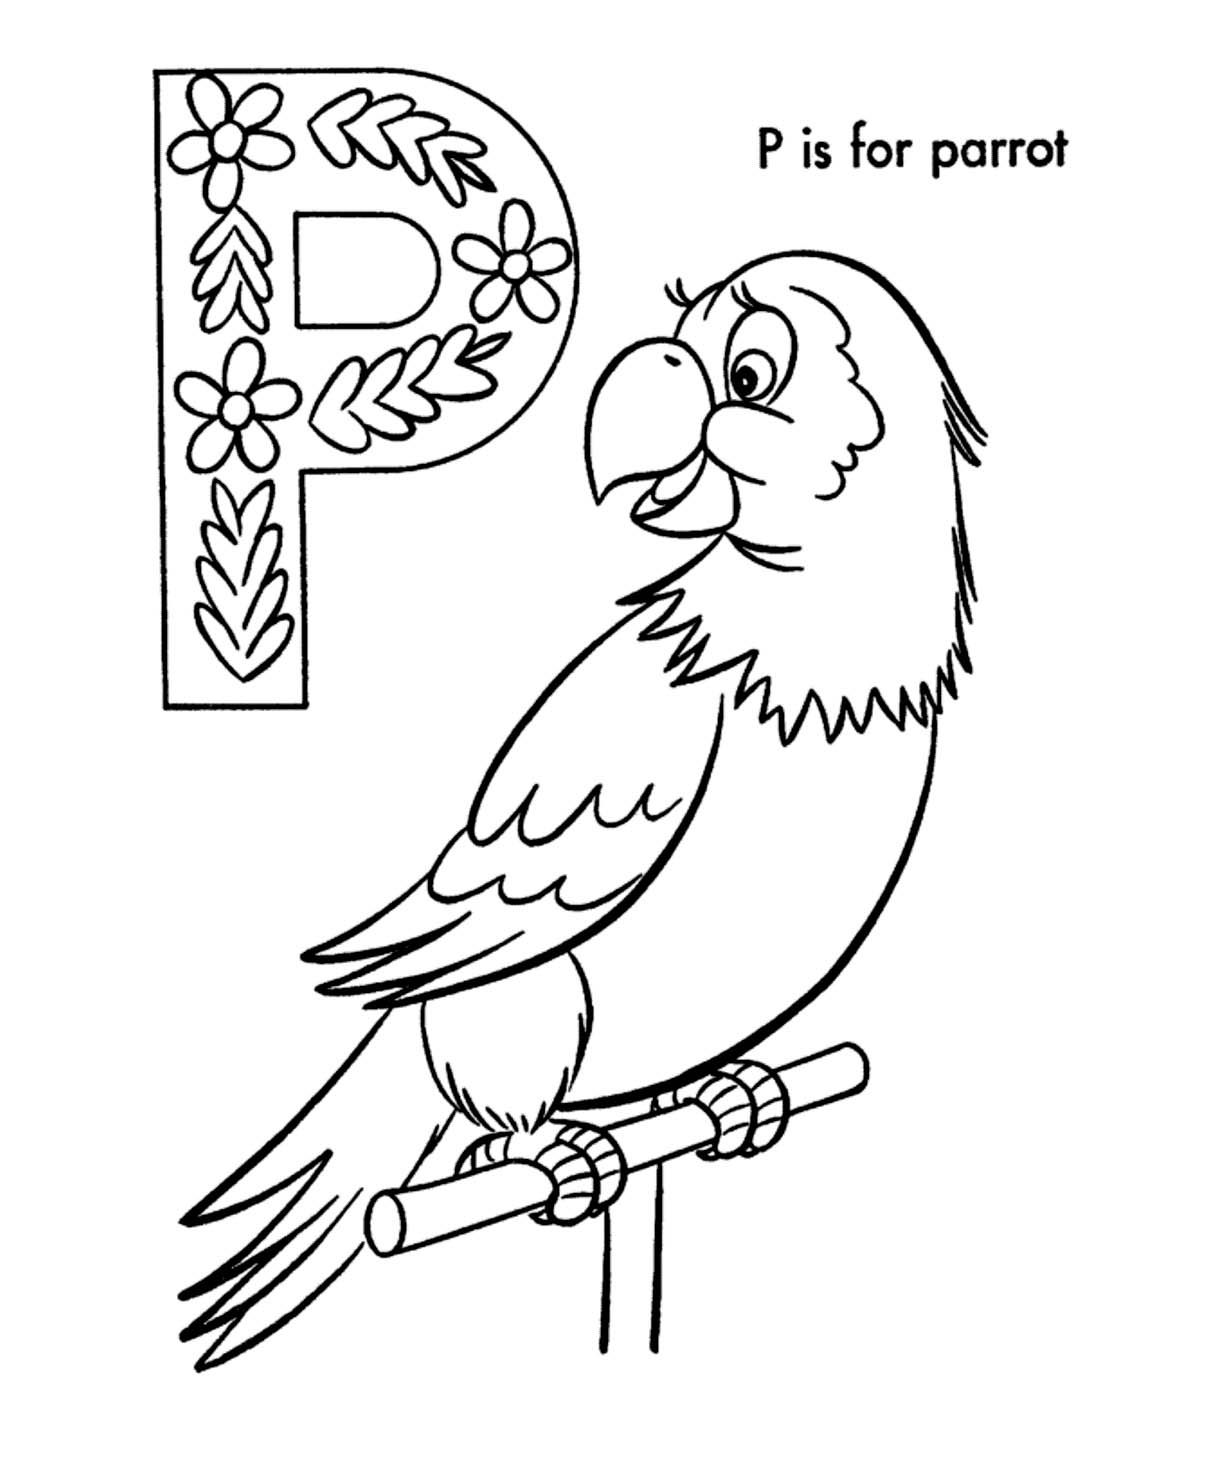 Parrot coloring pages drawing for Coloring pages parrot